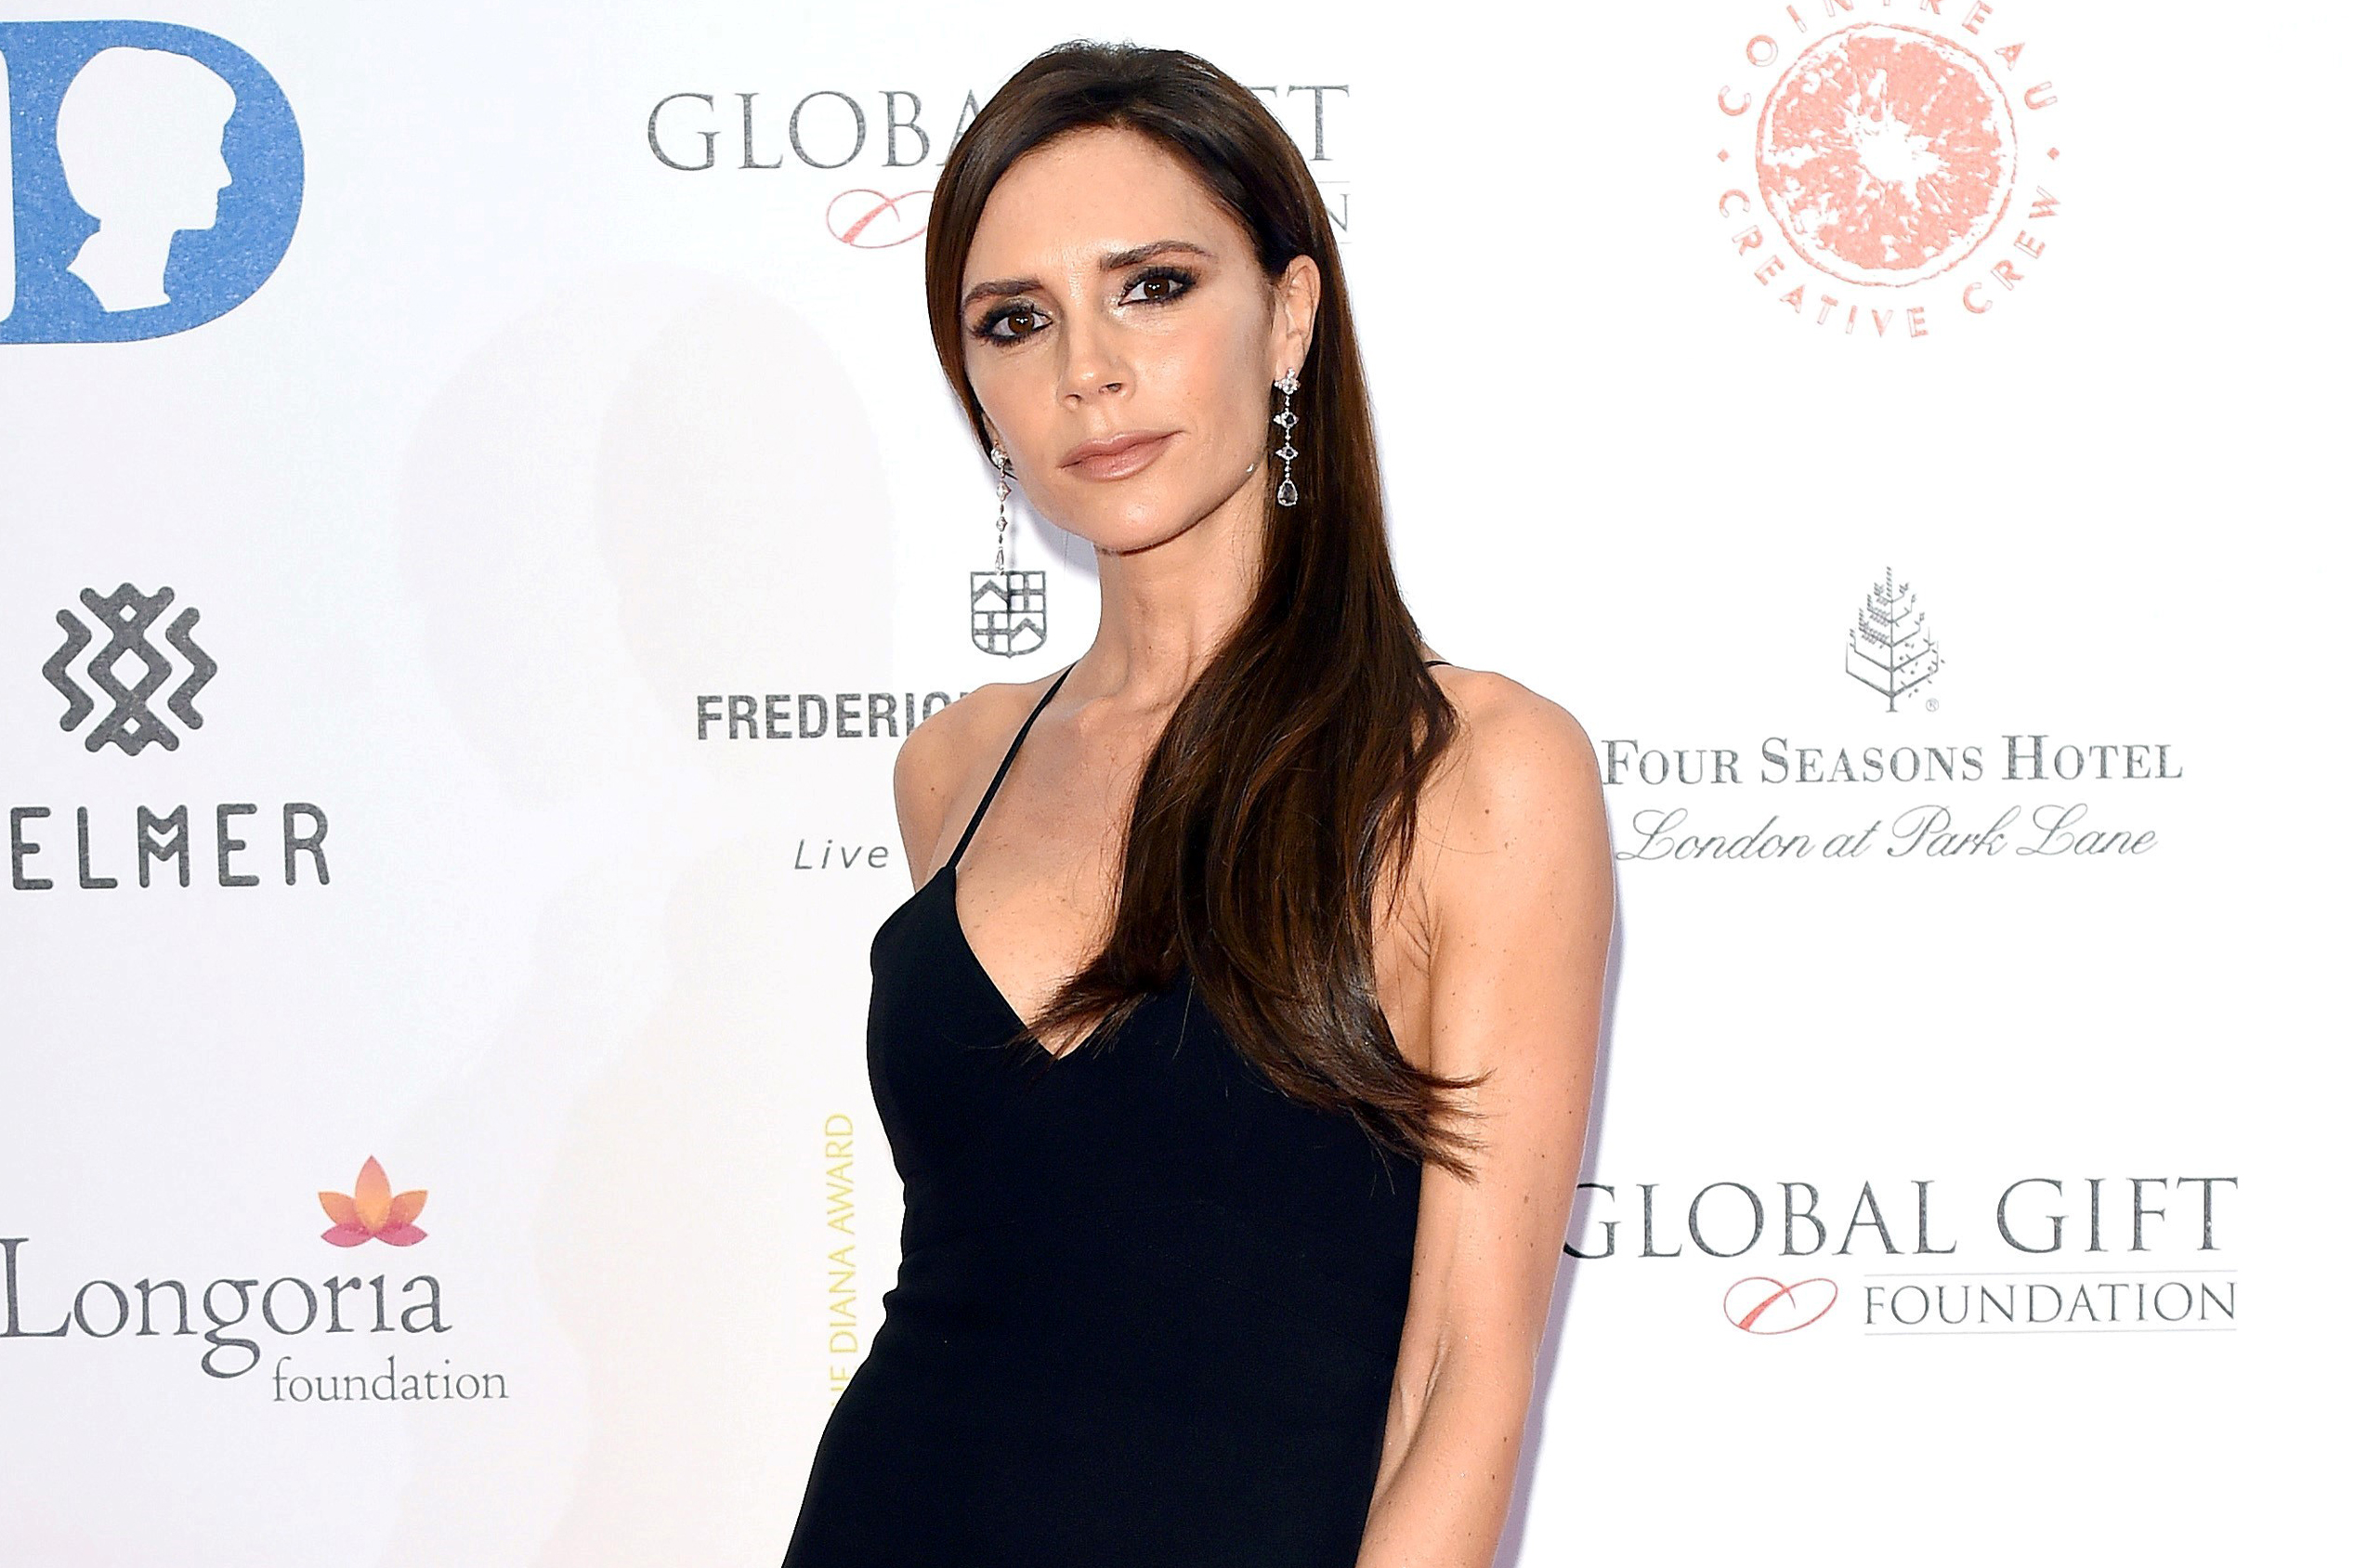 Photo of Victoria Beckham: Aku Tak Mau Photoshoot Cover Majalah Lagi